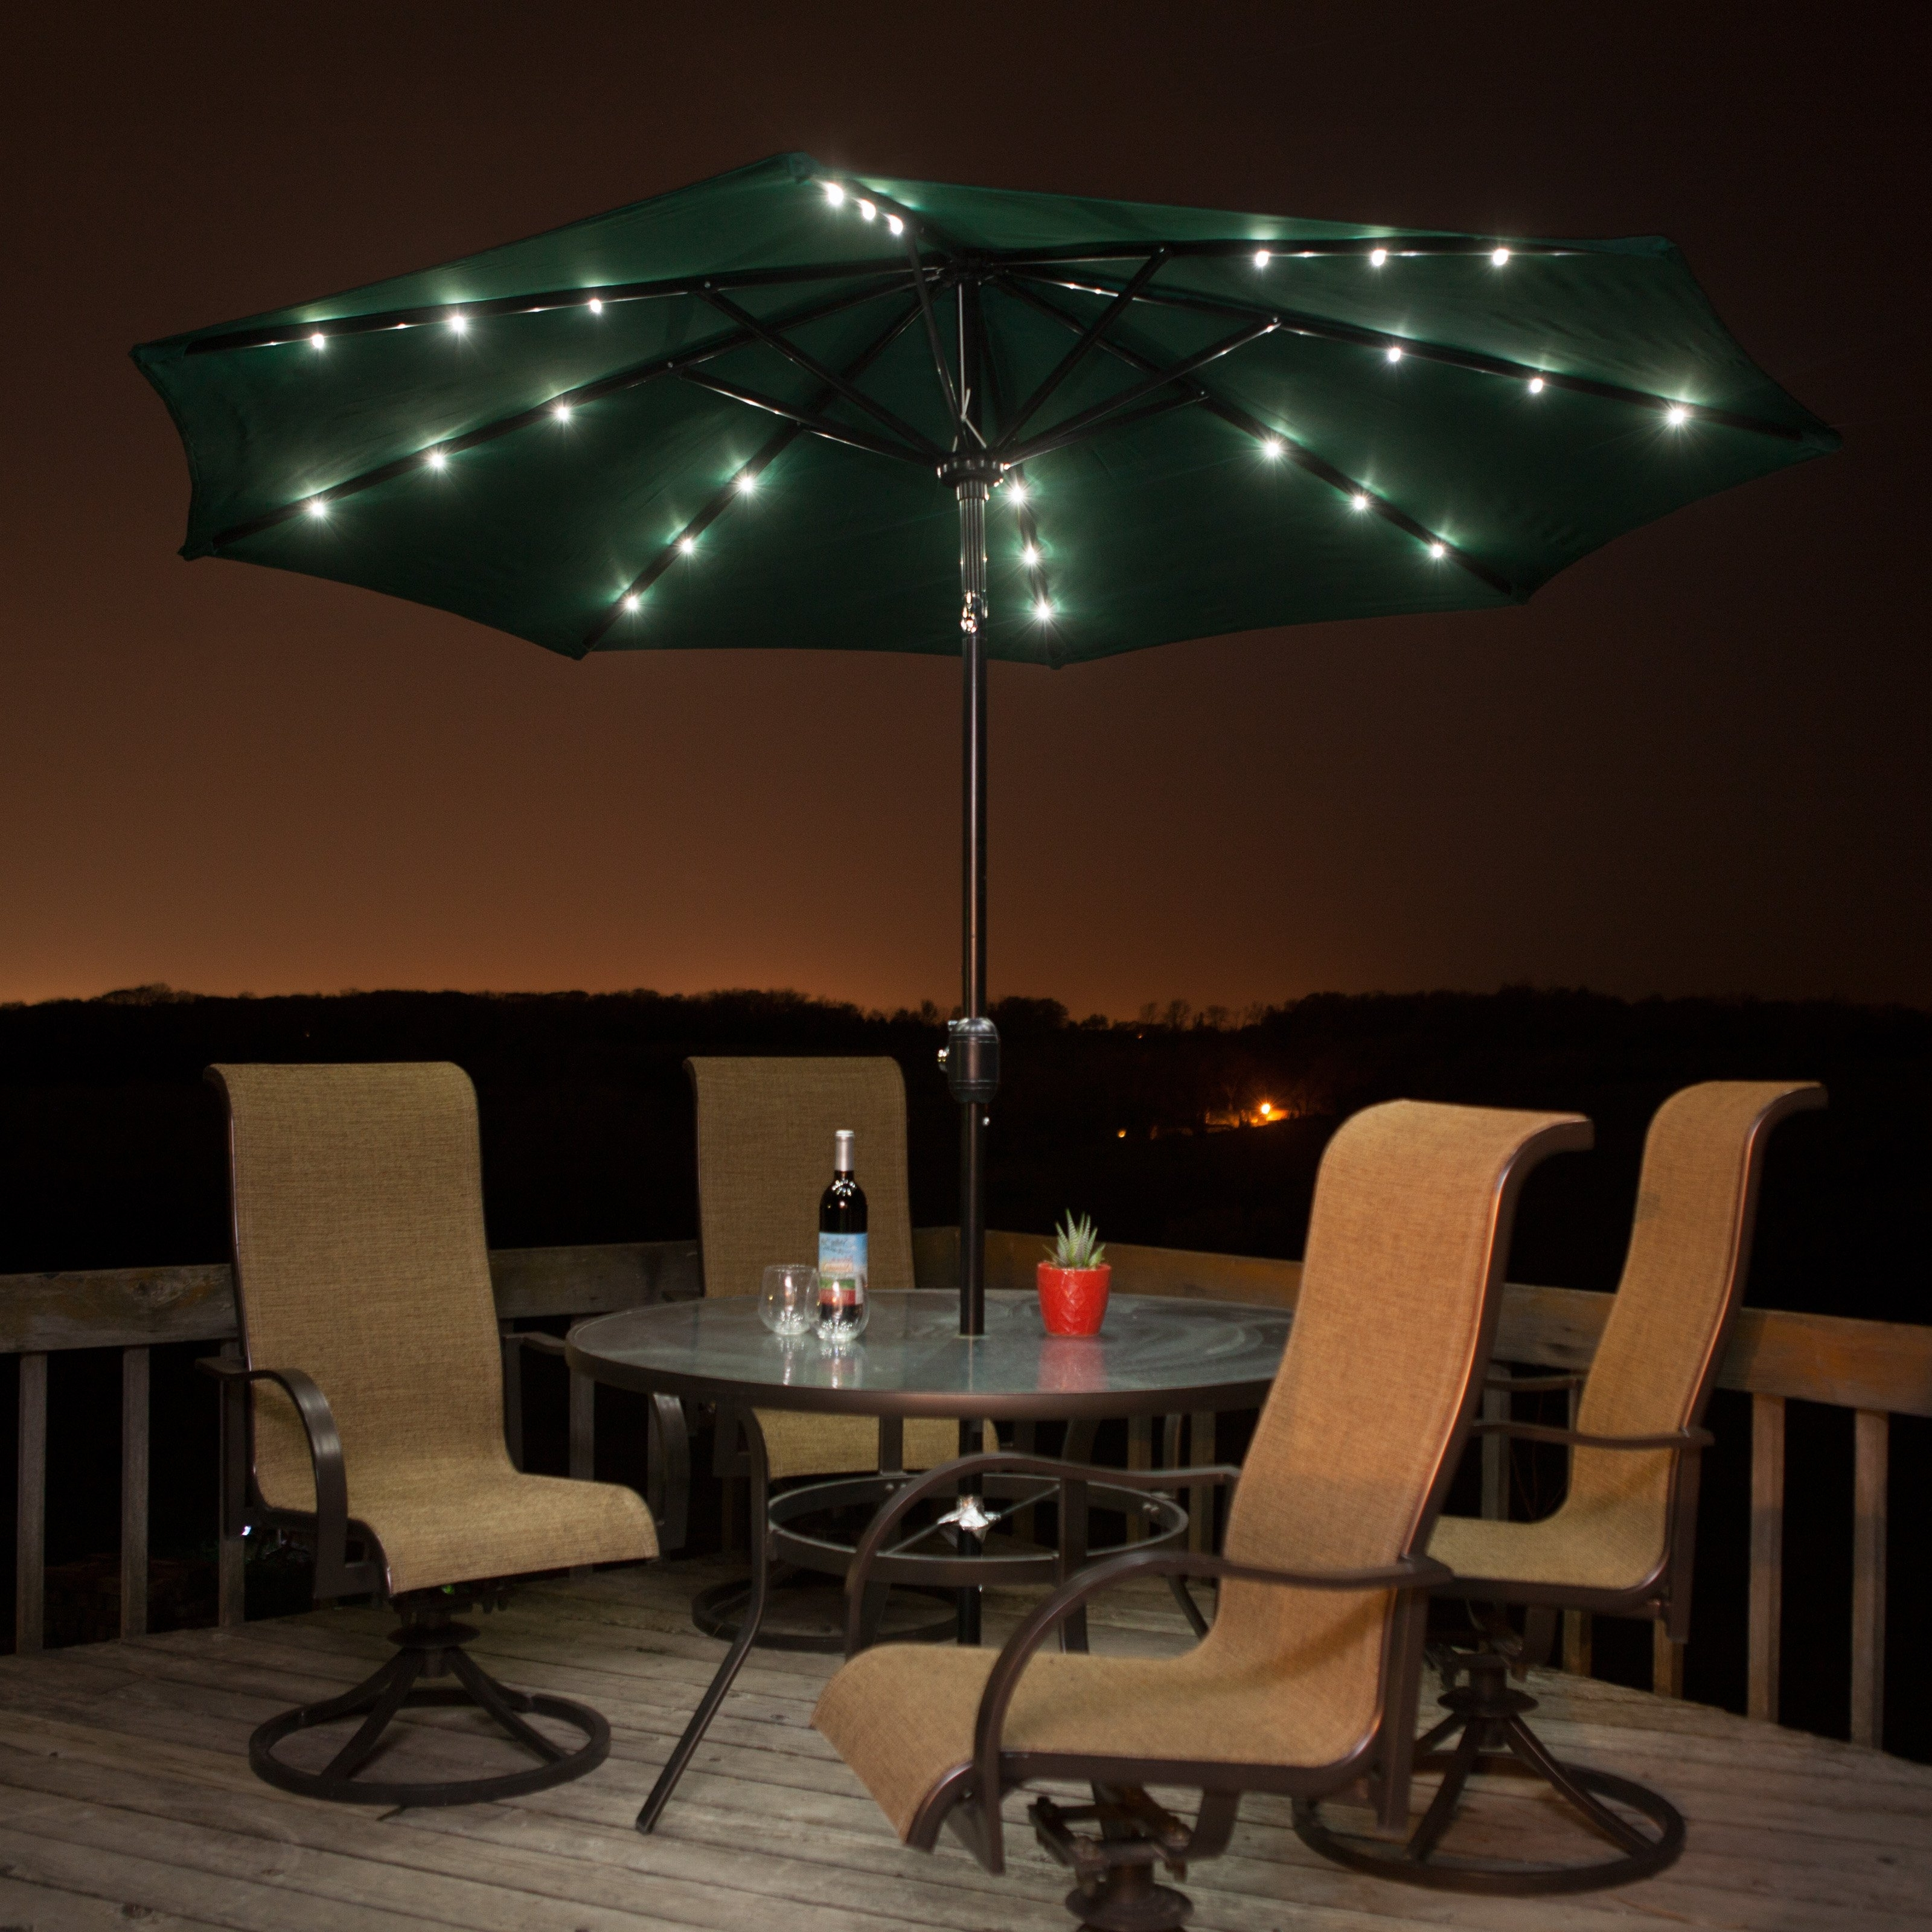 Fashionable Patio Umbrella Lighting — Mistikcamping Home Design : Different Intended For Solar Lights For Patio Umbrellas (View 3 of 20)